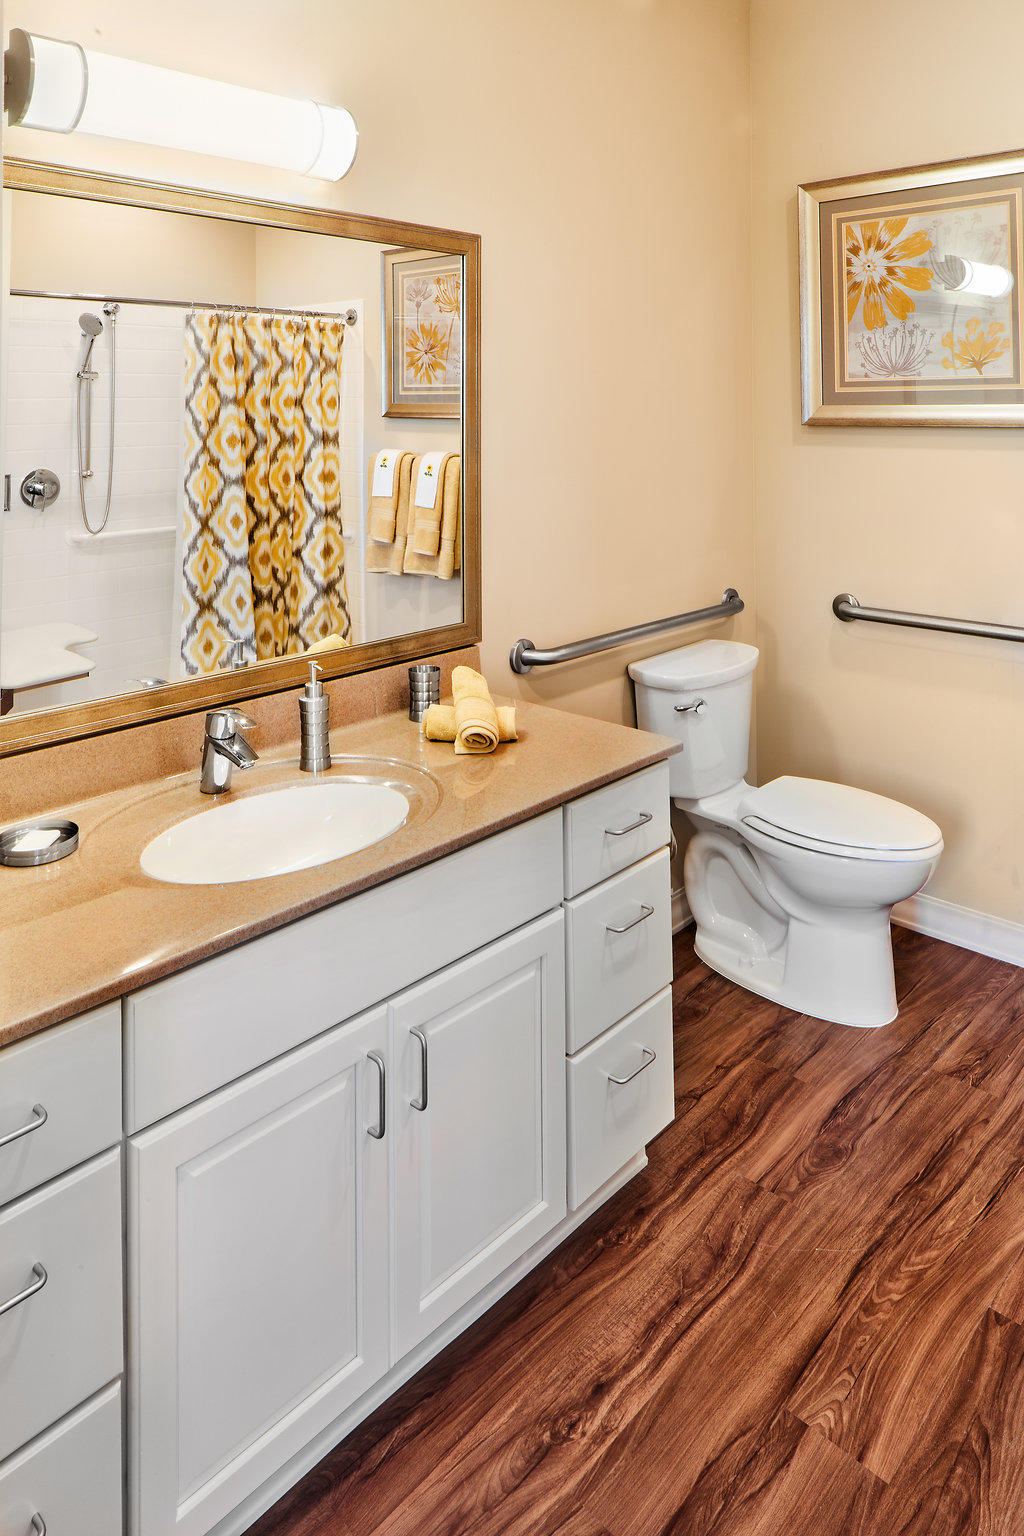 The Sheridan at Overland Park image 14